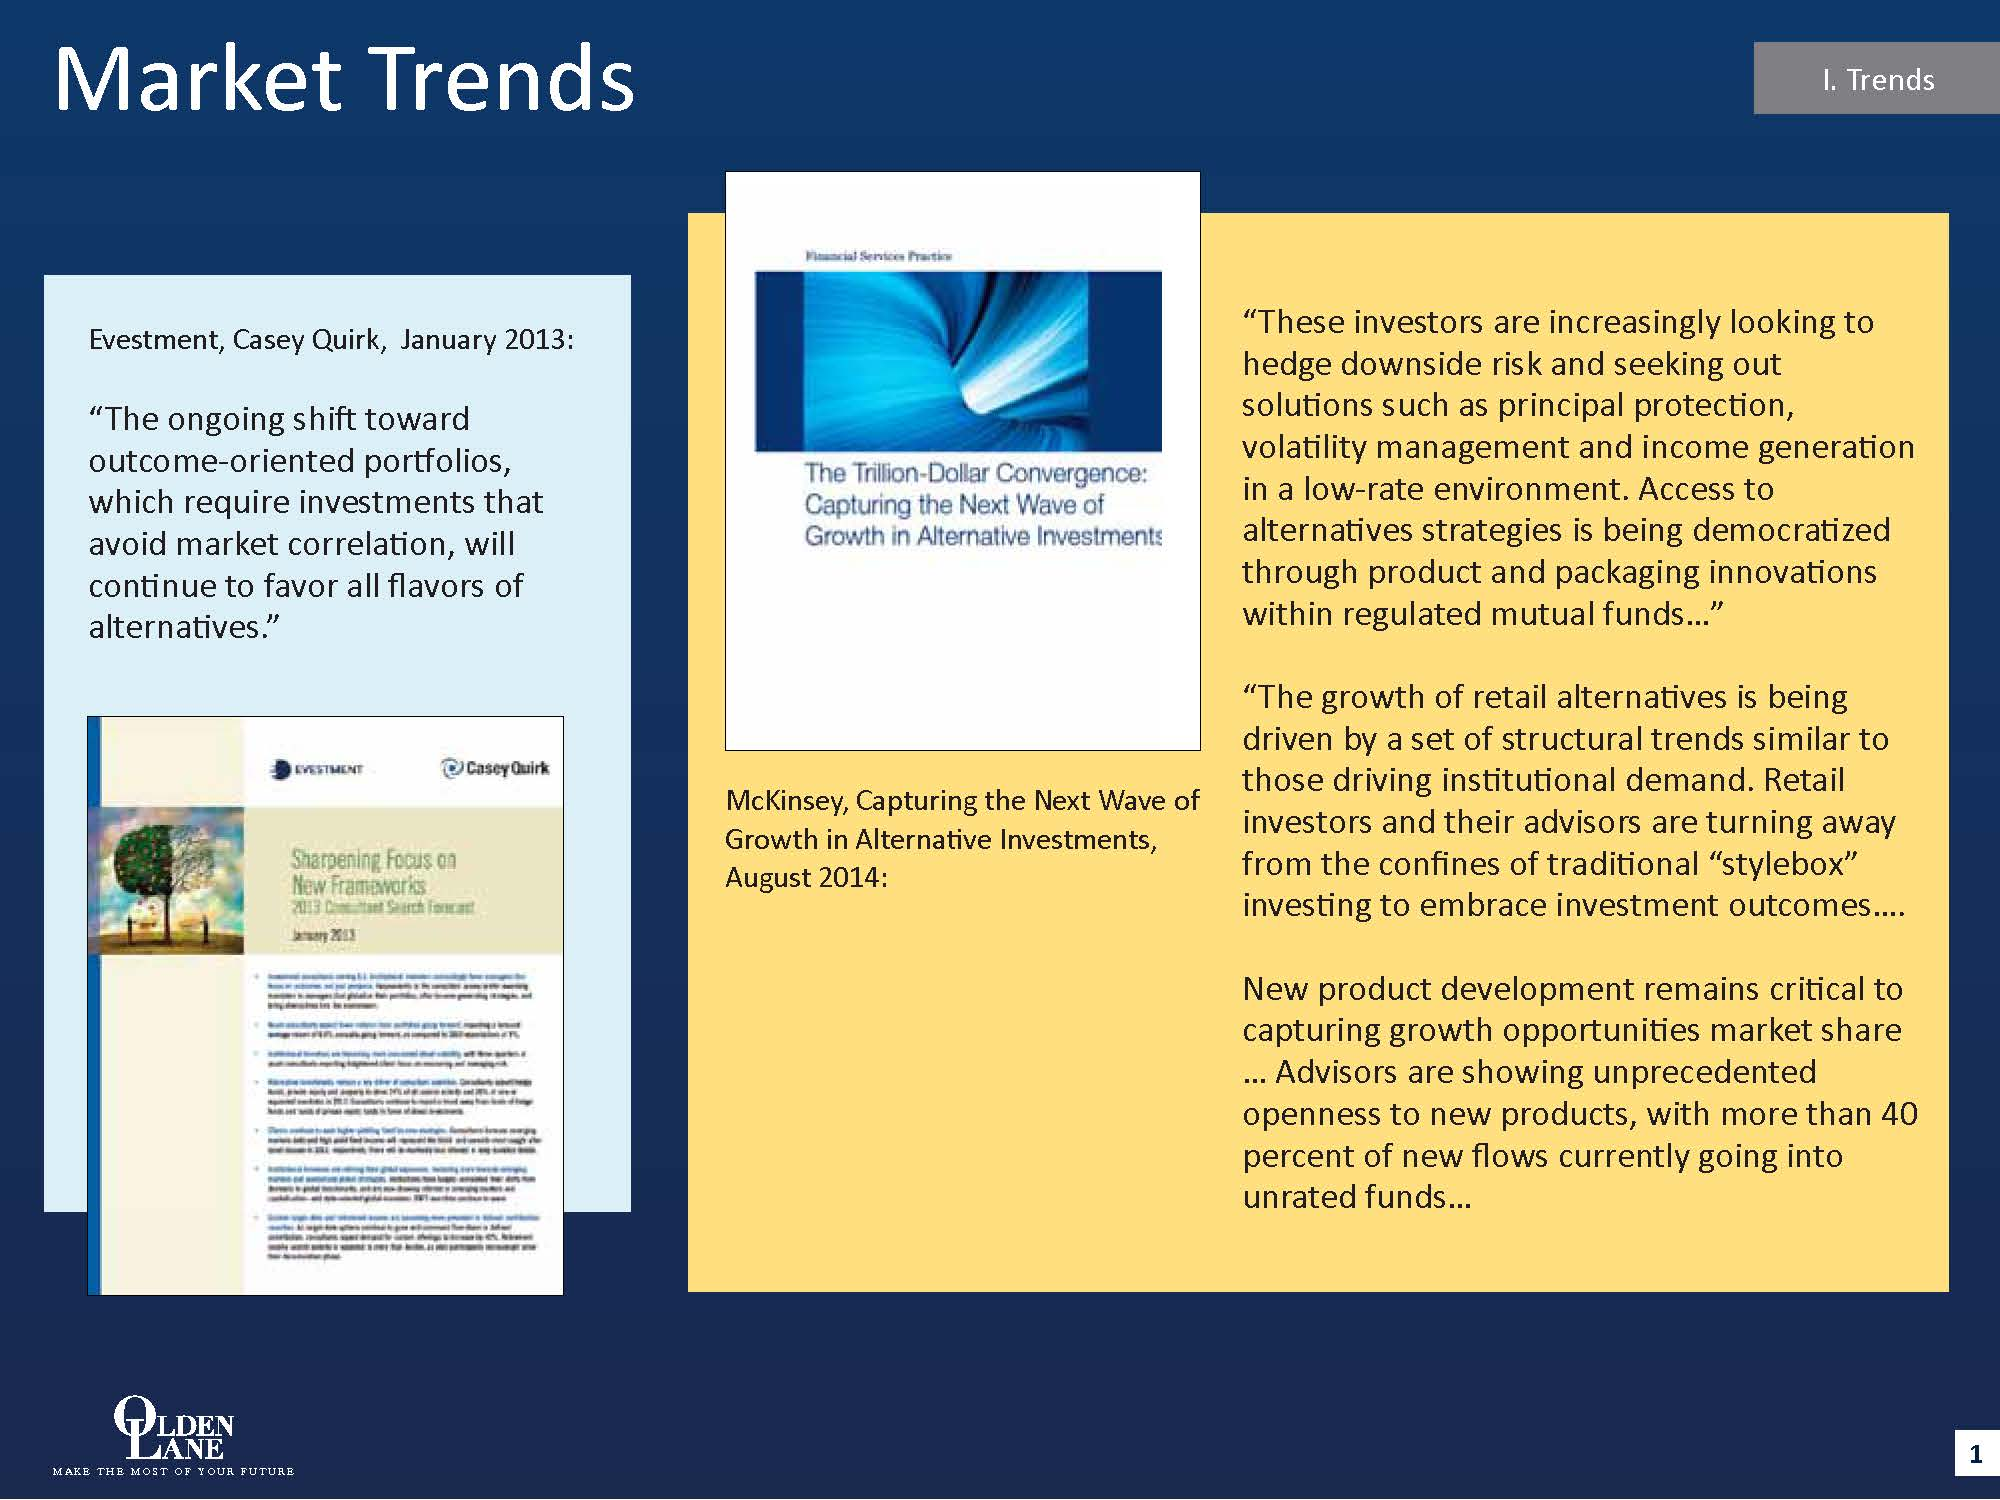 Powerpoint_Page_04.jpg